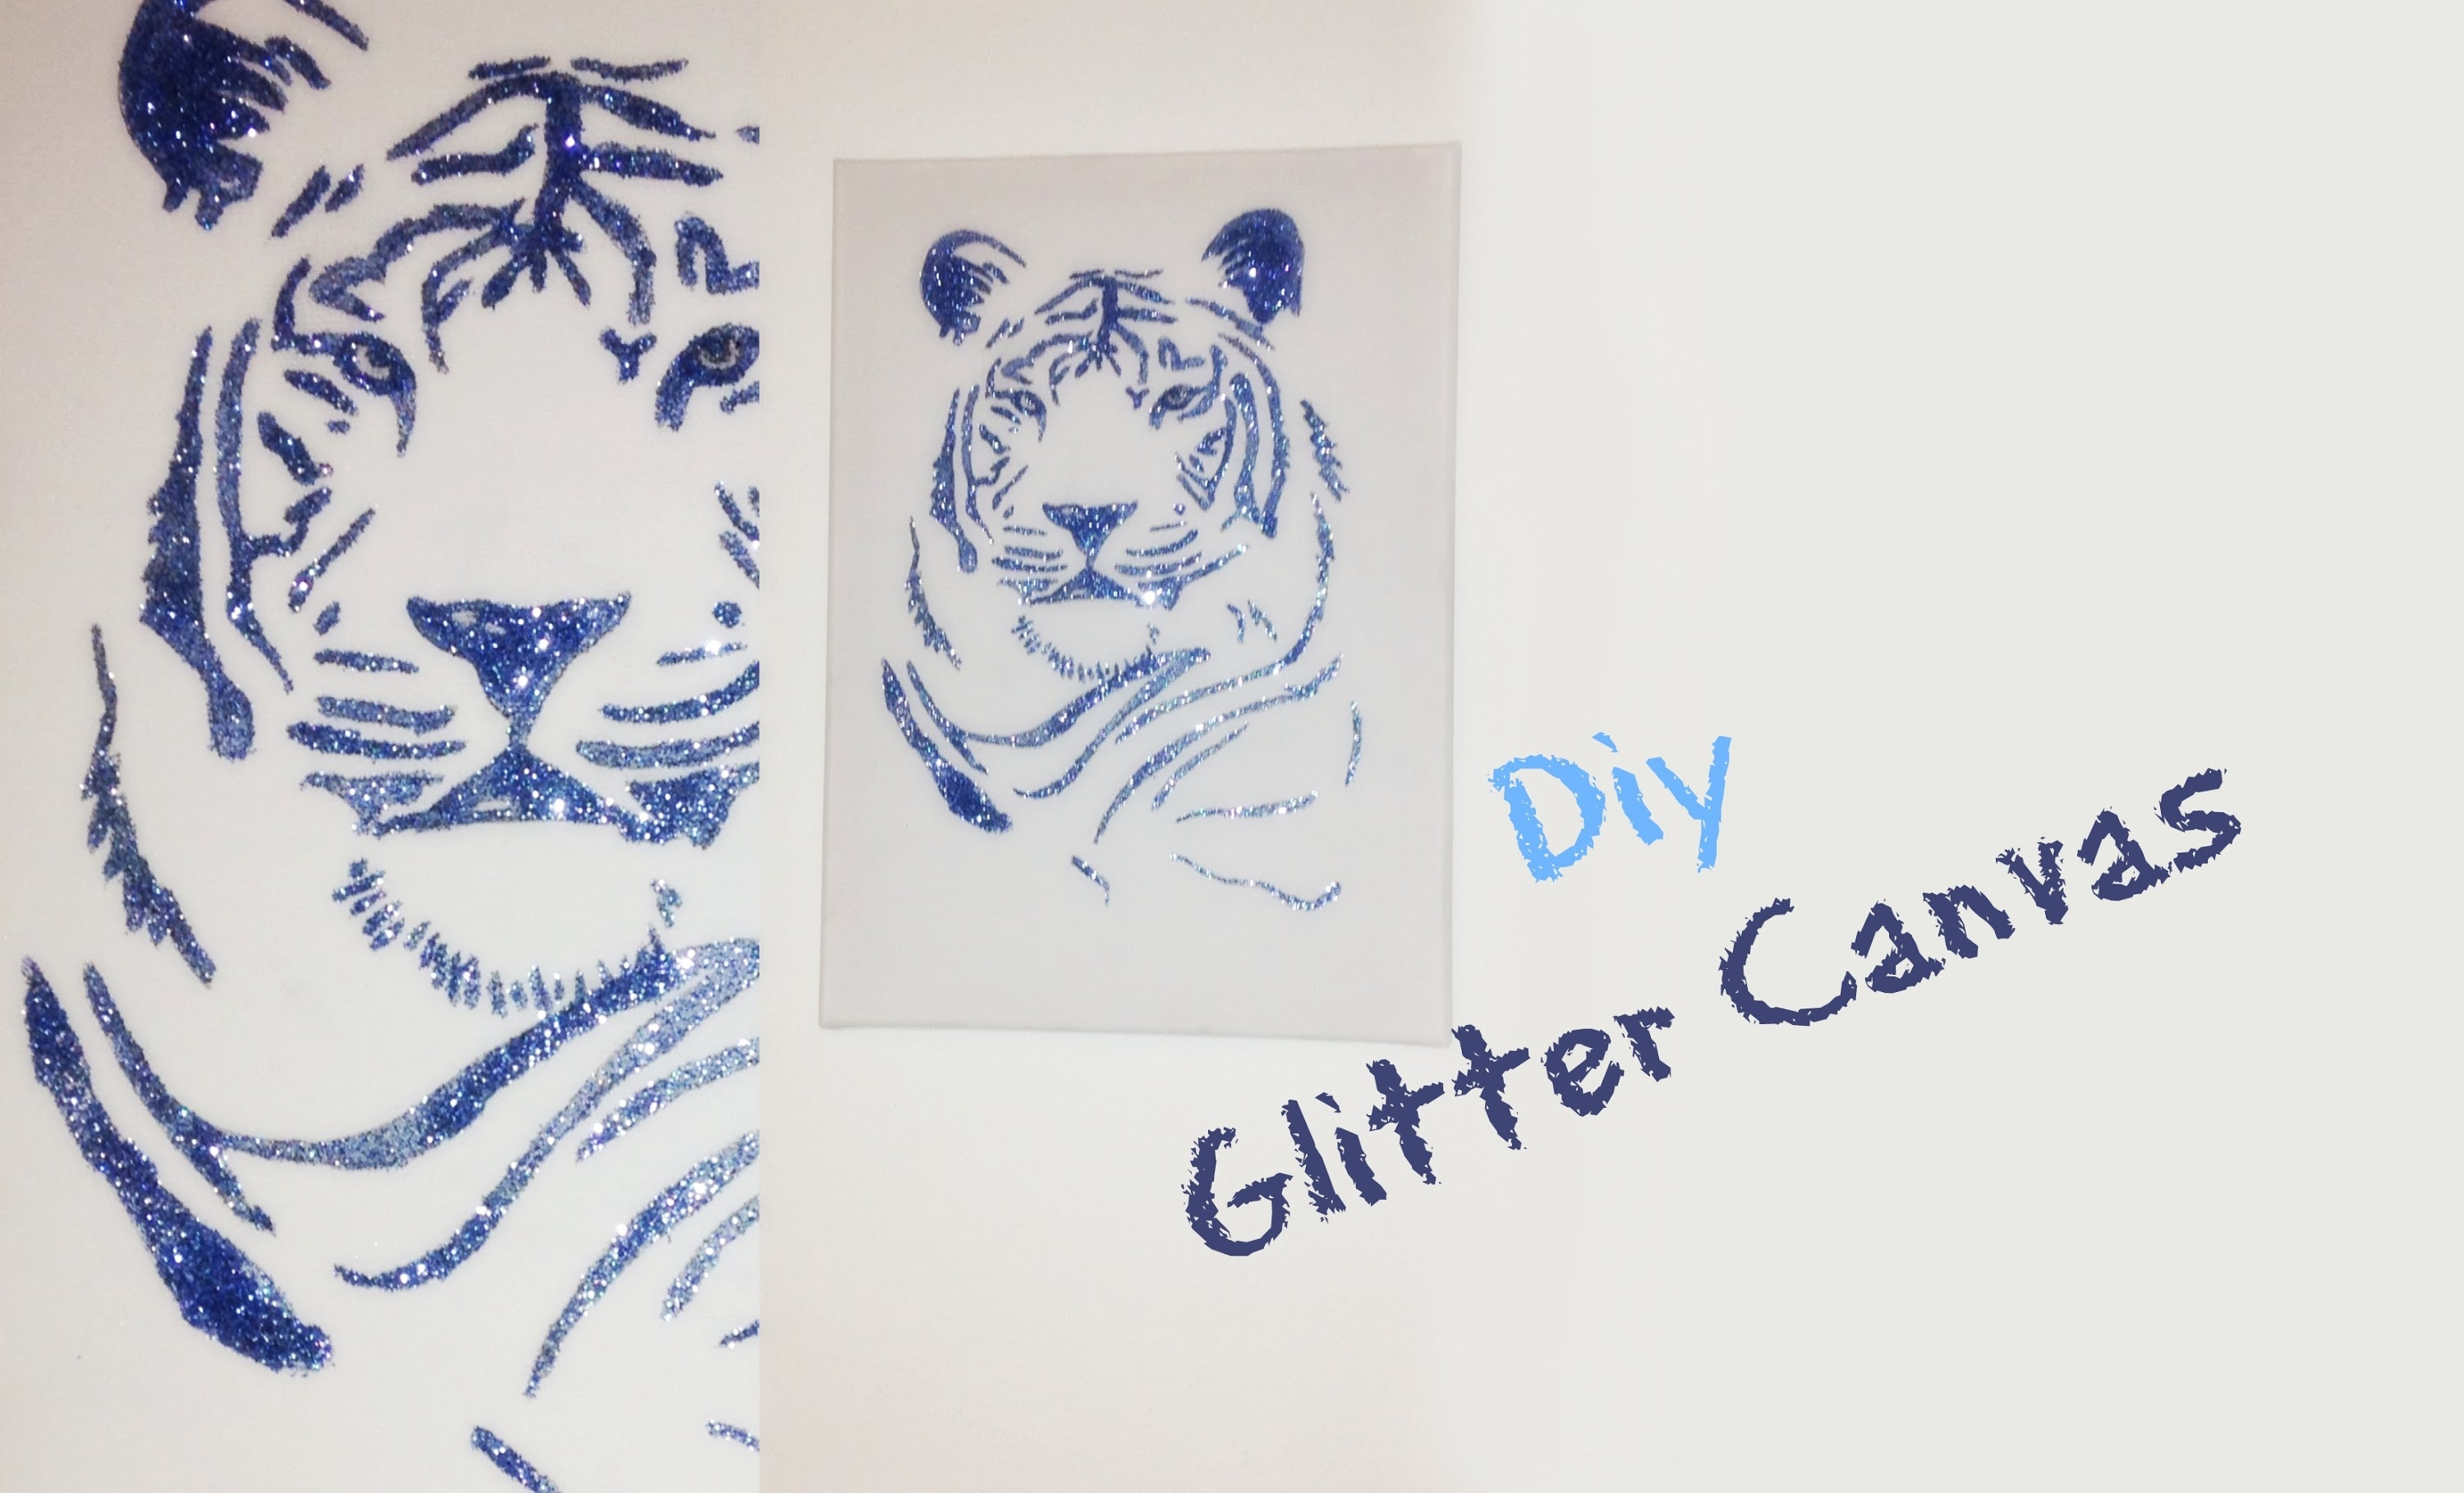 Room Decor Diy: Glitter Canvas Wall Art [italian] – Youtube Intended For Newest Glitter Canvas Wall Art (View 10 of 15)